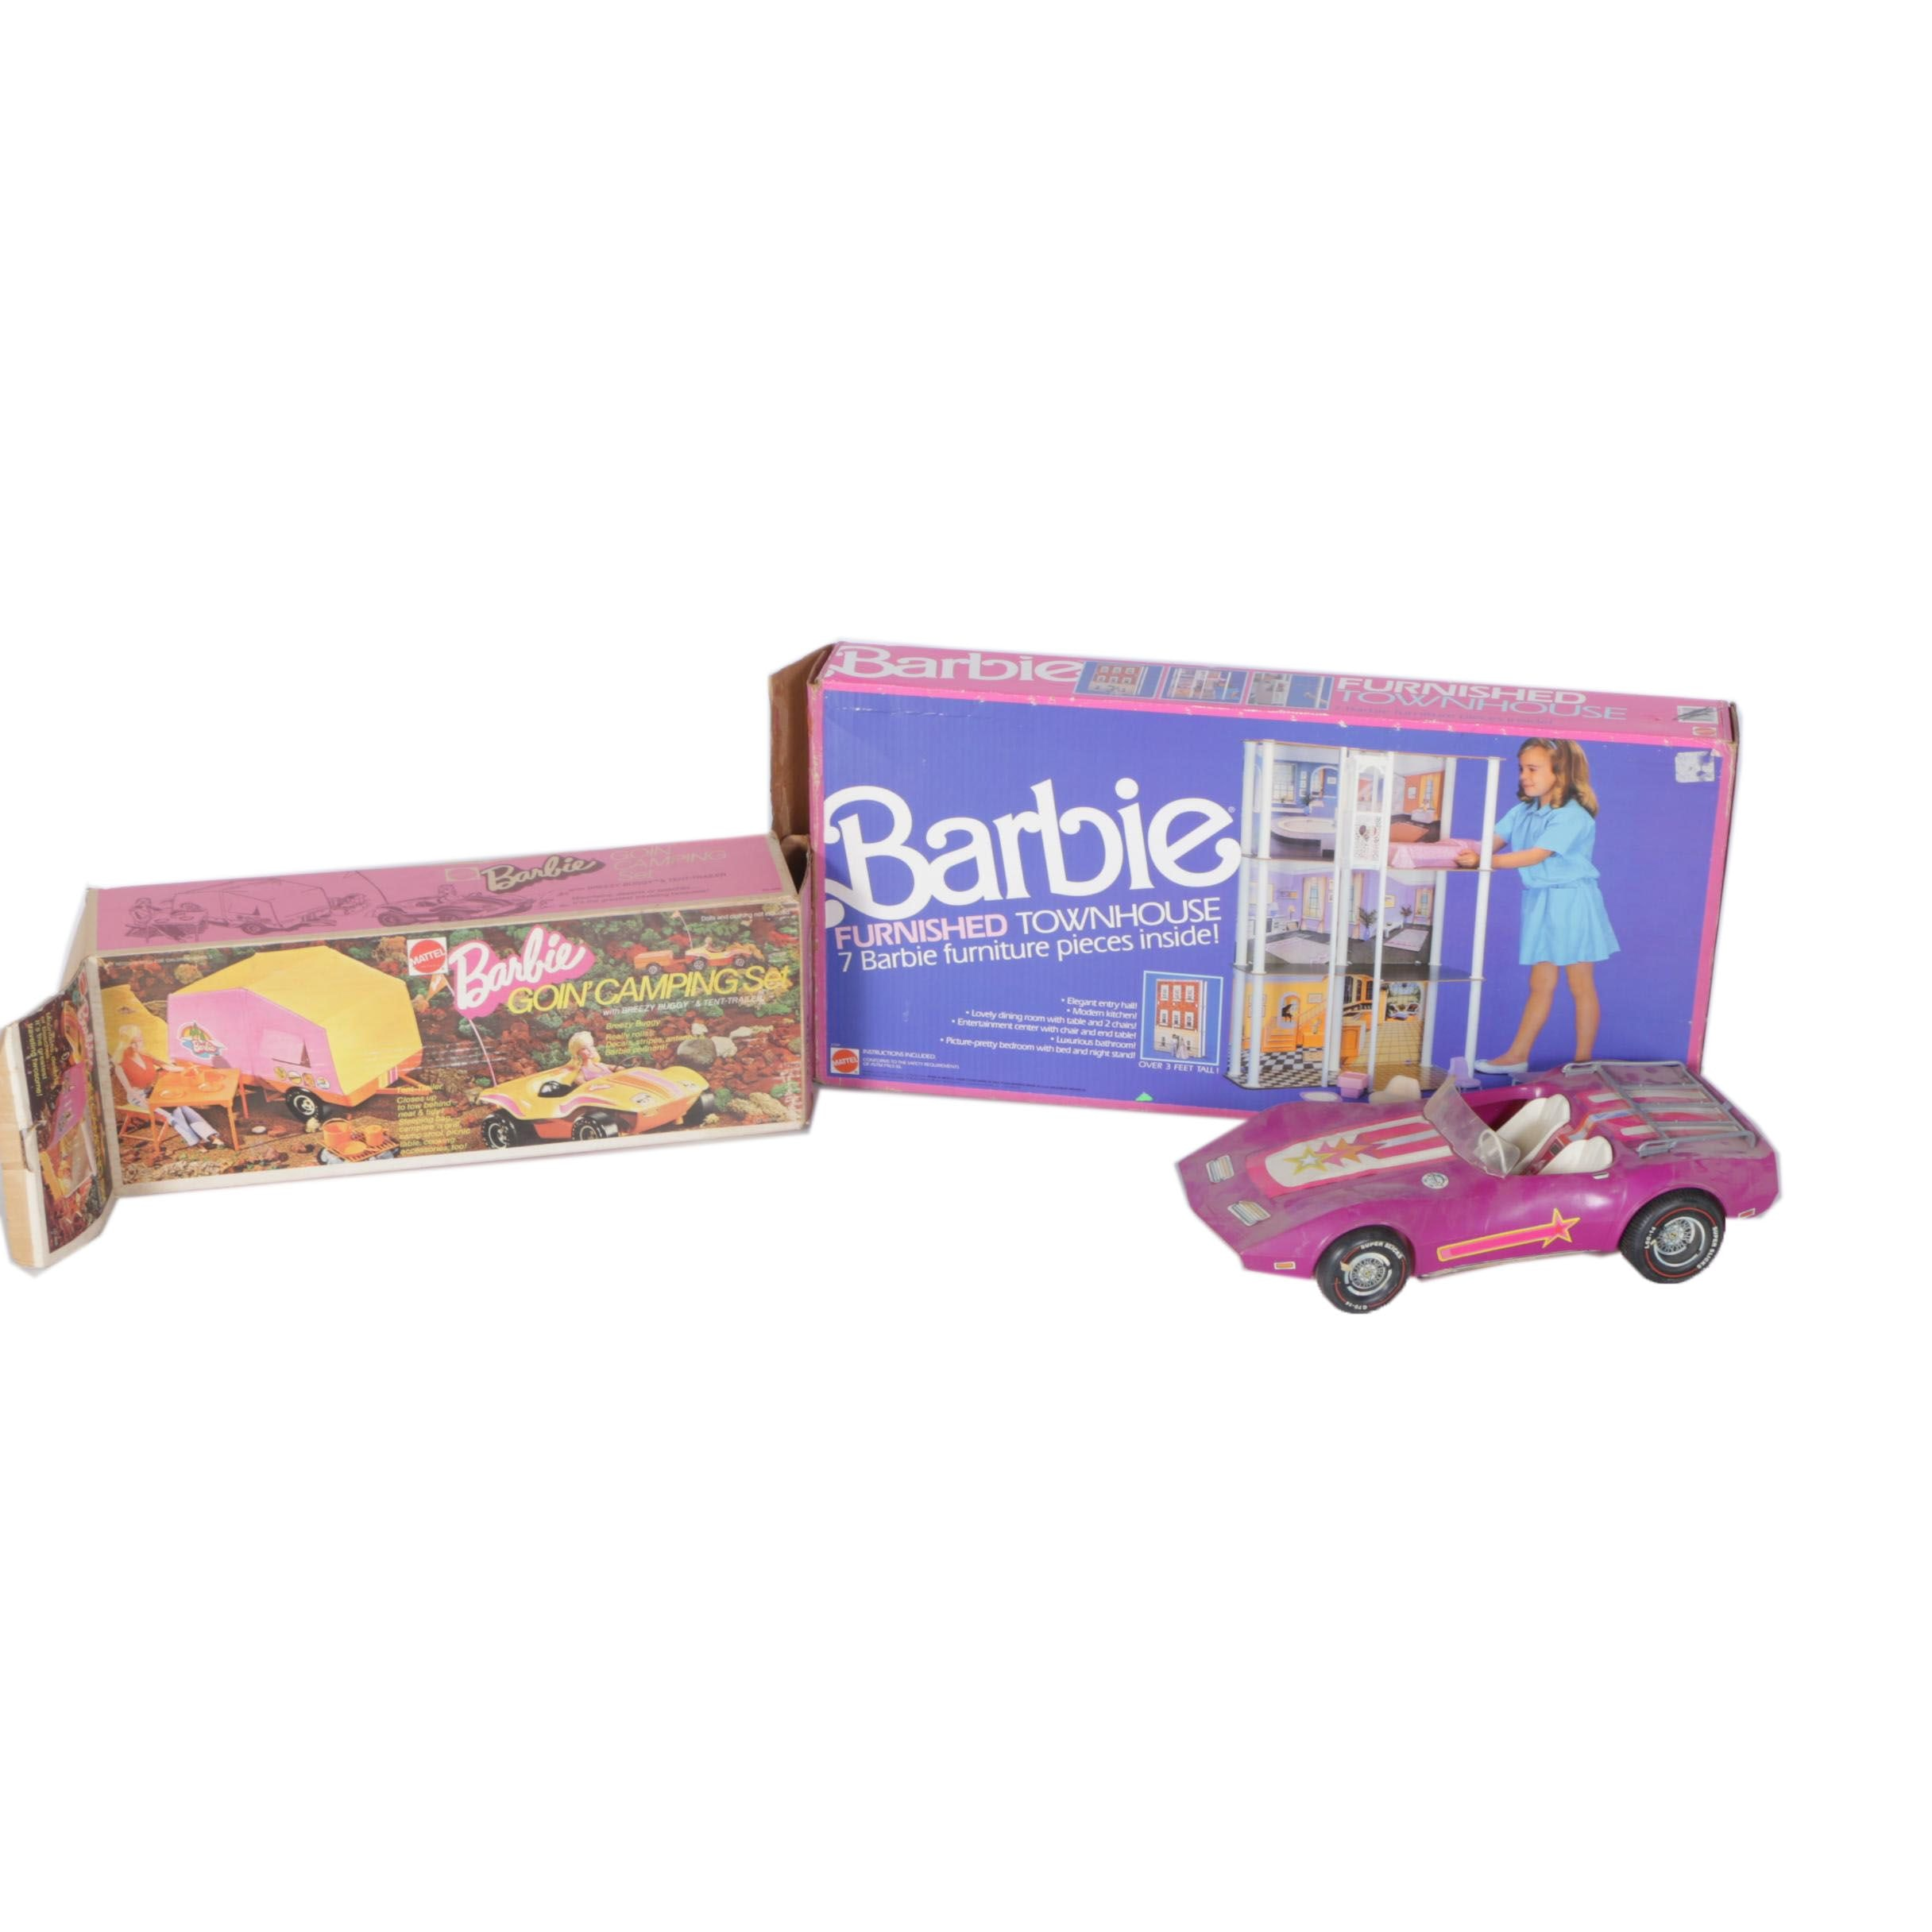 Barbie Accessories Including Doll House, Car, and Camping Set